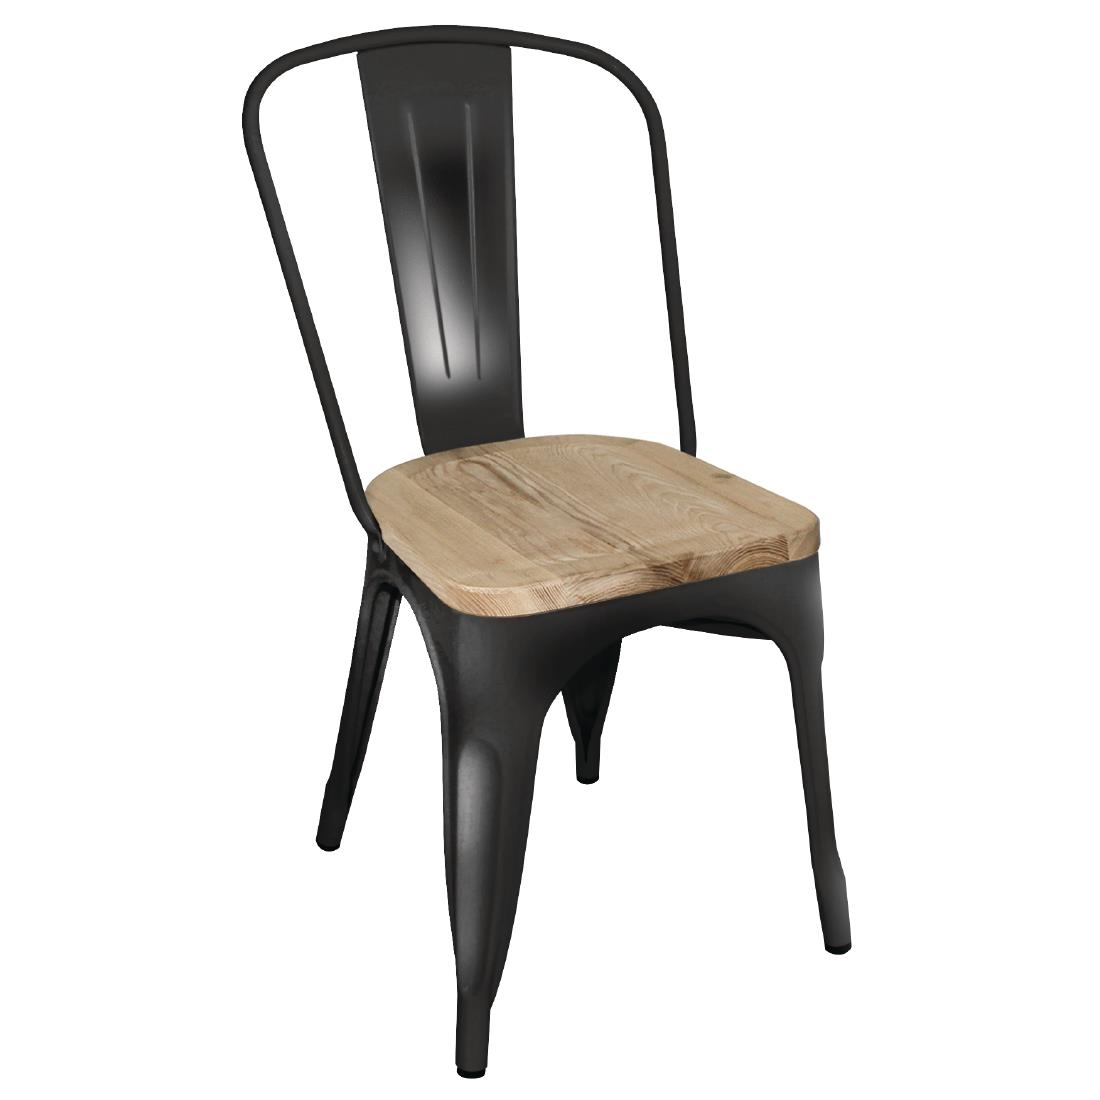 Side Chairs With Wooden Seat Pads Black